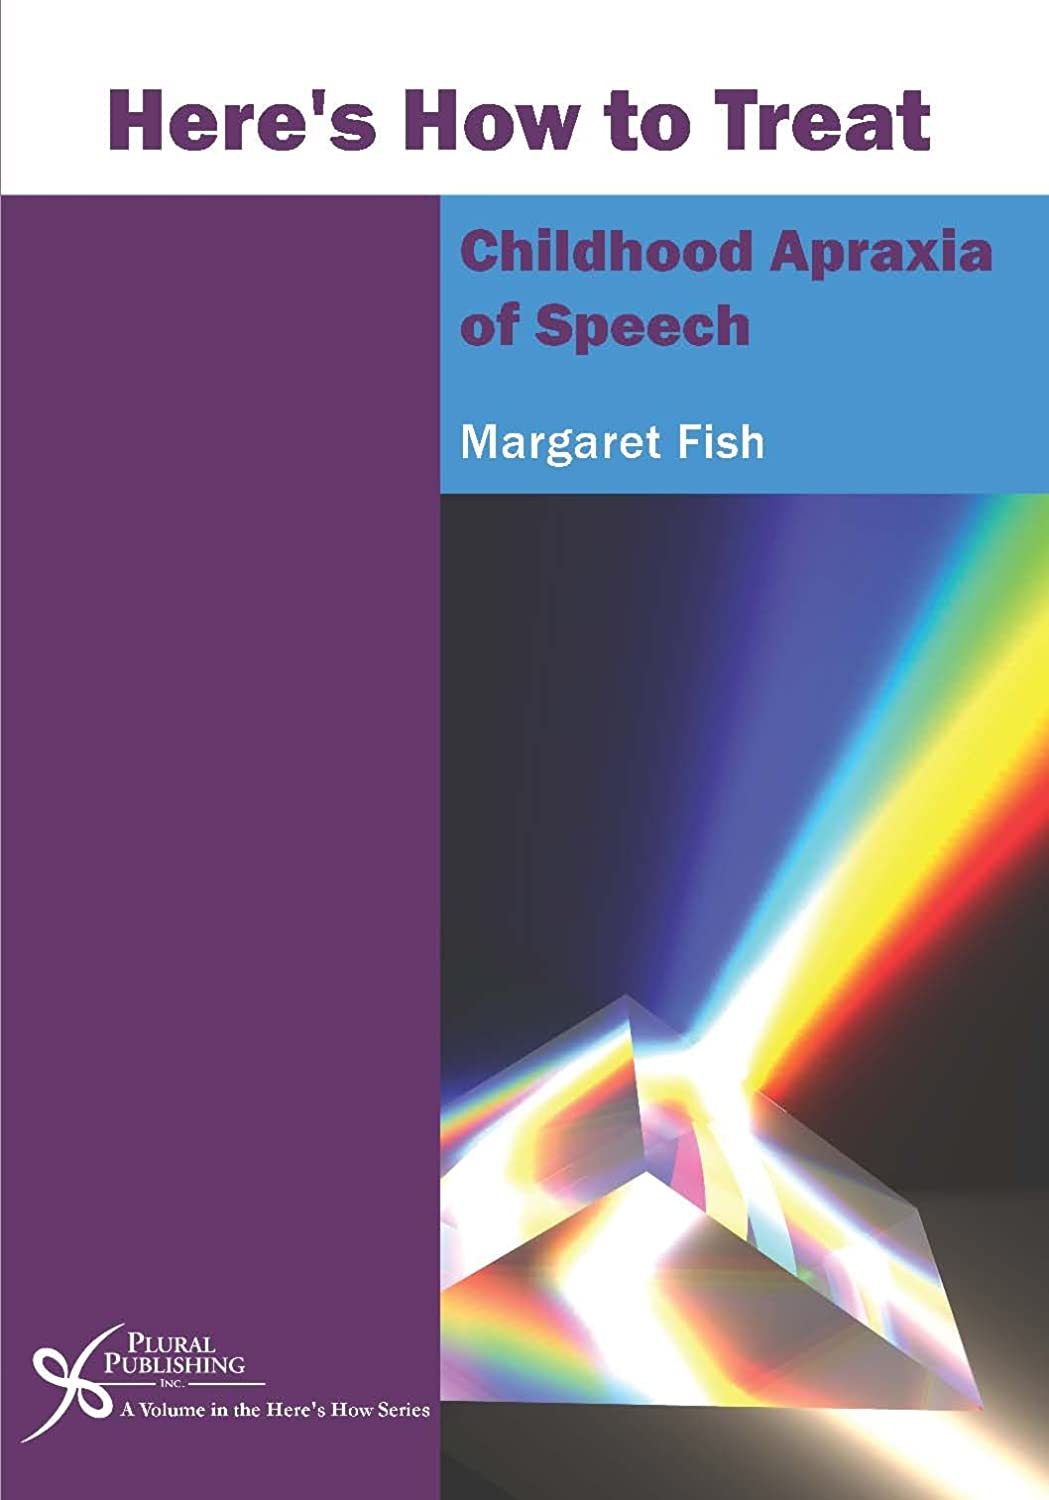 childhood apraxia of speech psychology essay I took professional development workshops on childhood apraxia of speech (cas) and treated it successfully in three kiddos from my caseload it's important to know the signs, but also to refer your client to a qualified slp for differential diagnosis if you suspect childhood apraxia of speech.